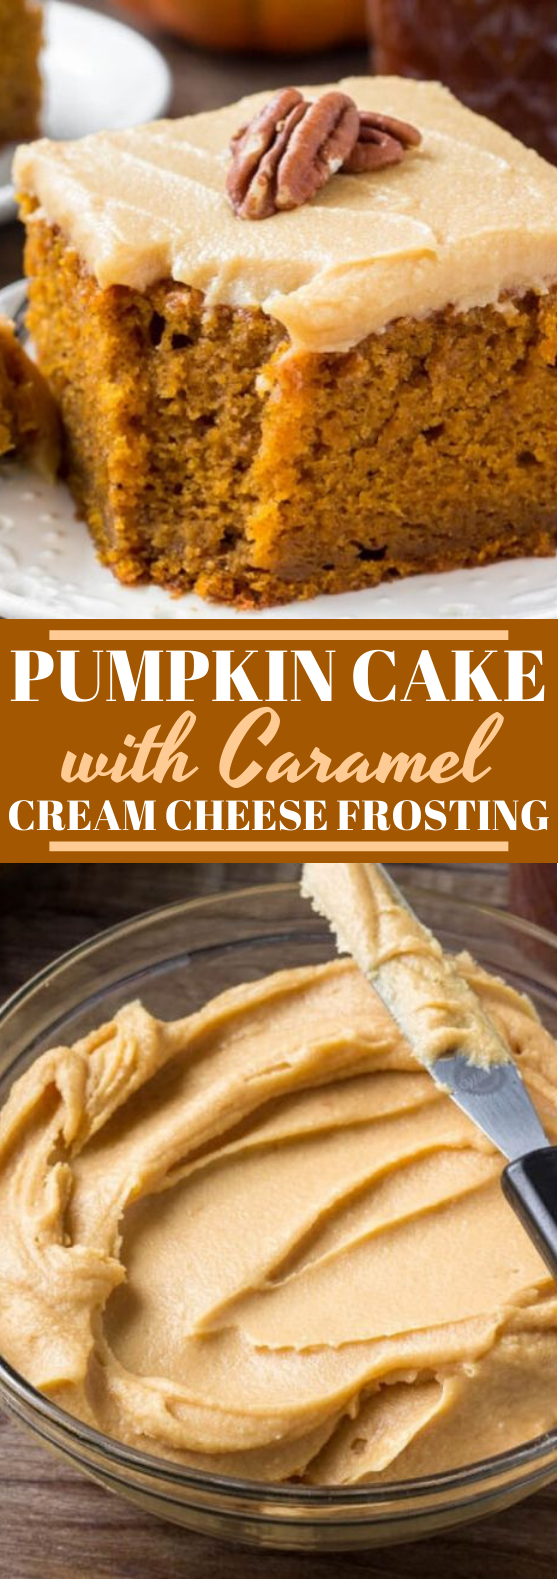 Pumpkin Cake with Caramel Cream Cheese Frosting #cake #pumpkin #desserts #baking #fall